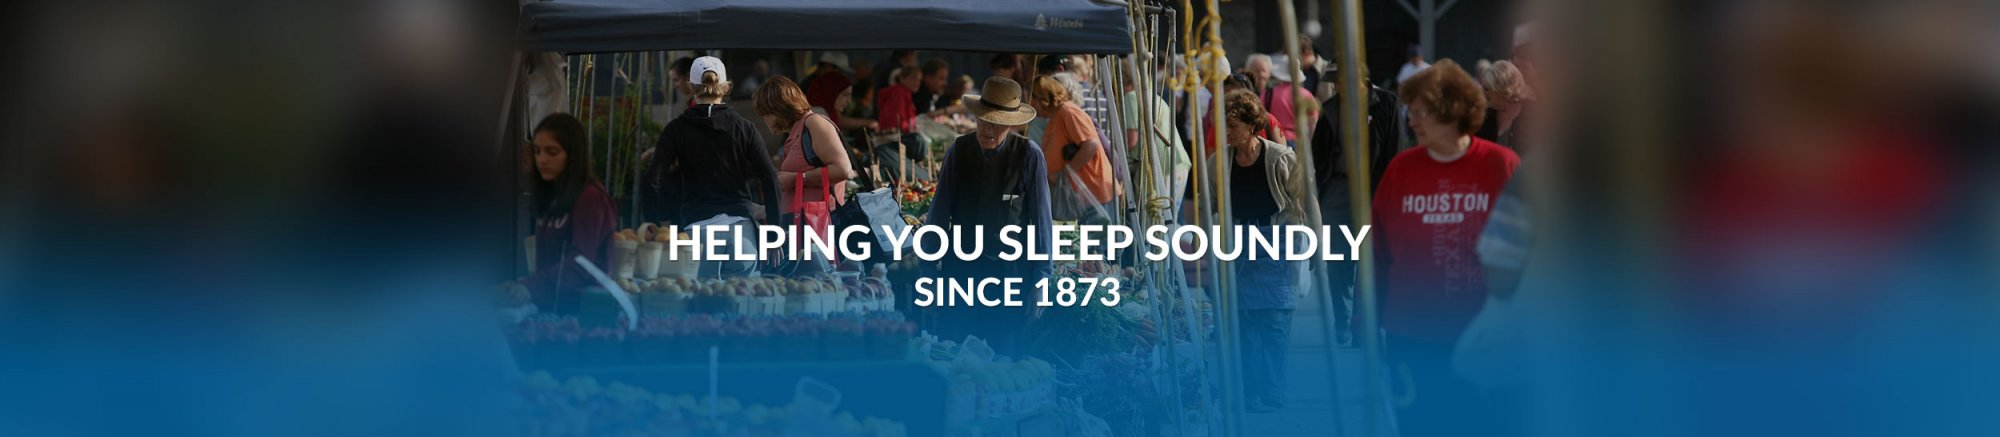 helping you sleep soundly since 1873